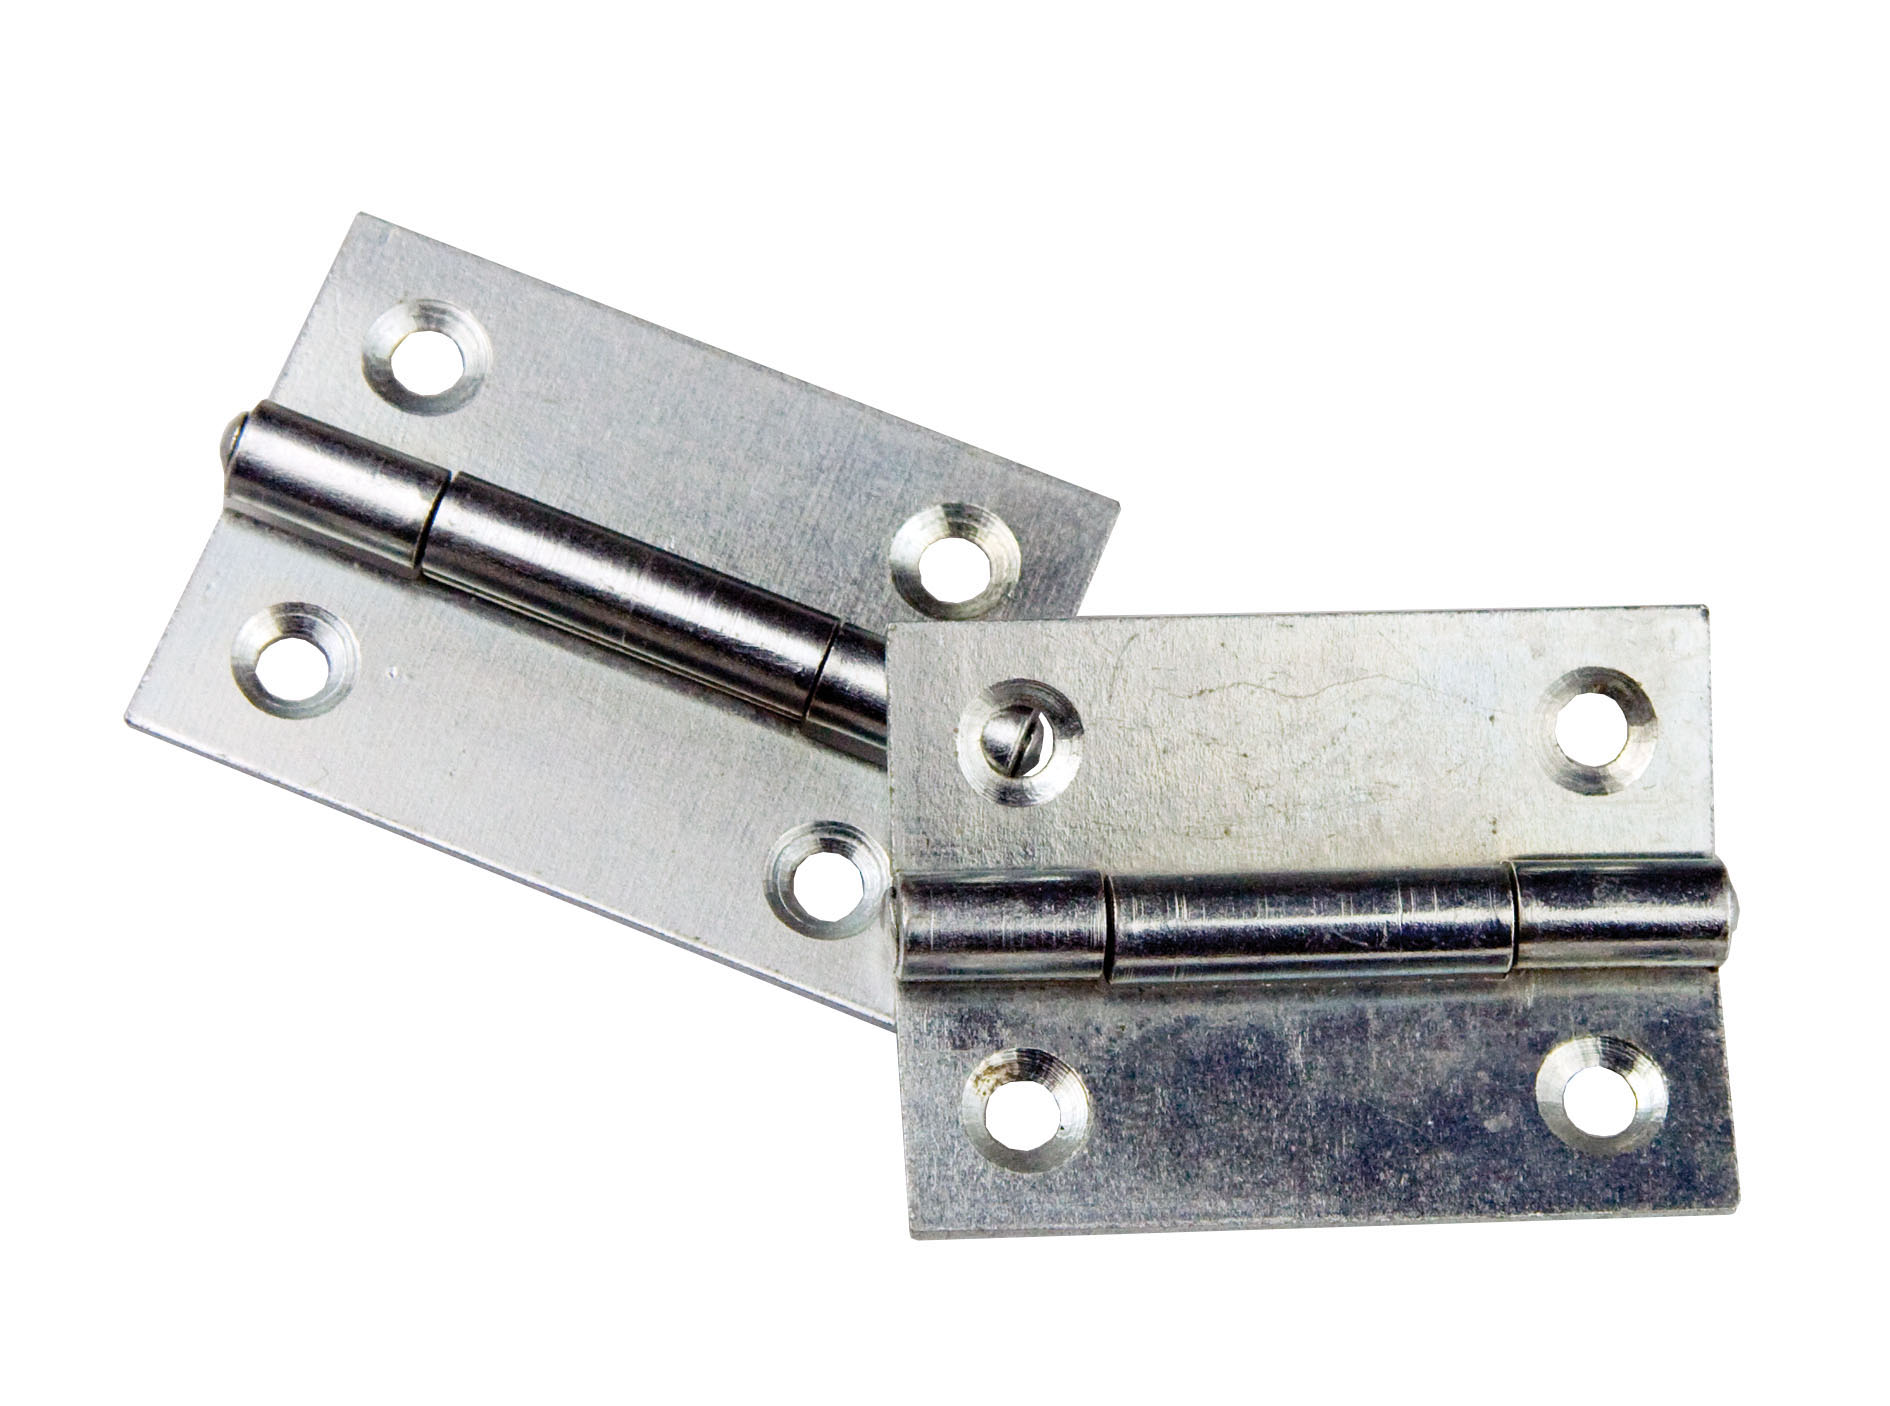 40 x 33mm Zinc Plated Butt Hinge 40 x 33mm Zinc Plated Butt Hinge Measurements Width: 40mm Height: 33mm Thickness: 1.4mm Screw Holes : 4 x 4mm Sold as singles Material: Steel Finish: Zinc Plated Manufactured by Siso 40 x 33mm Zinc Plated Butt Hinge Description These butt hinges are traditionally used on furniture doors or small lightweight doors. They are recessed into the frame and also the edge of the door so that when the door is closed they can butt up together ensuring the door is shut flush. The knuckle of the hinge is normally on show and is often matched with handles or knobs of a similiar finish.